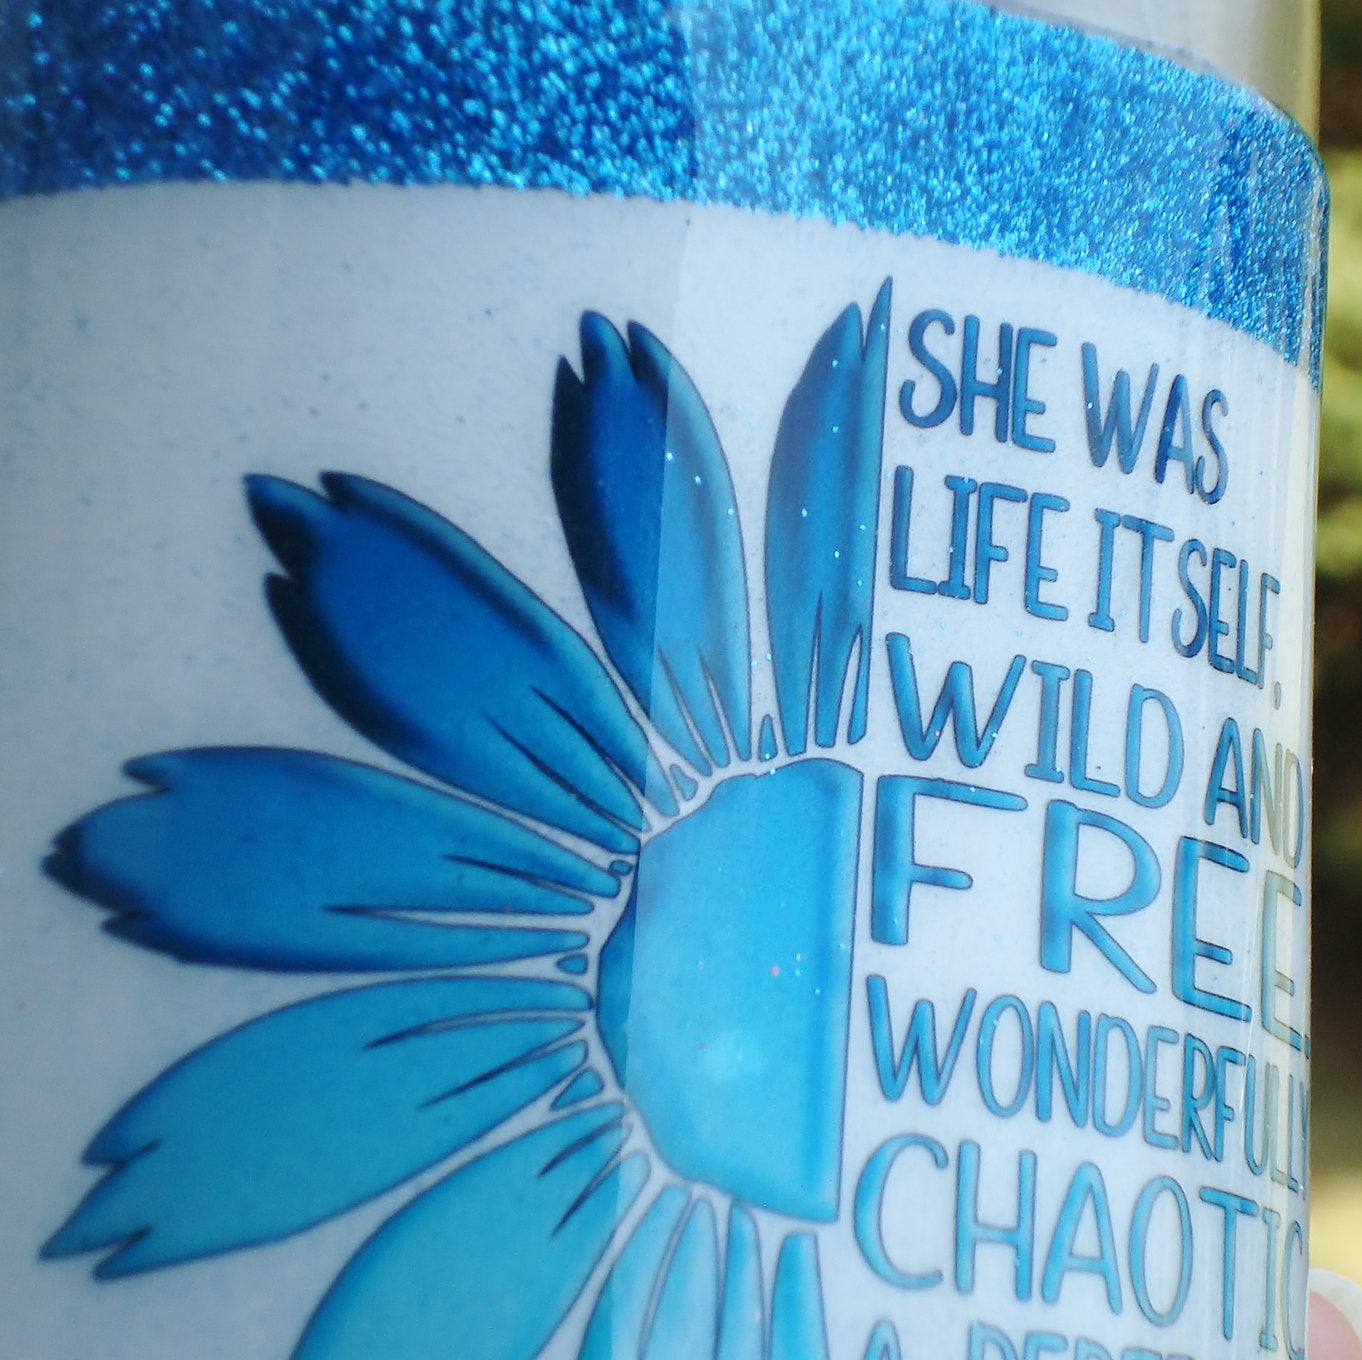 16 oz Teal Sunflower Chaos glitter mica wine stainless steel tumbler Birthday Graduation Gift for her